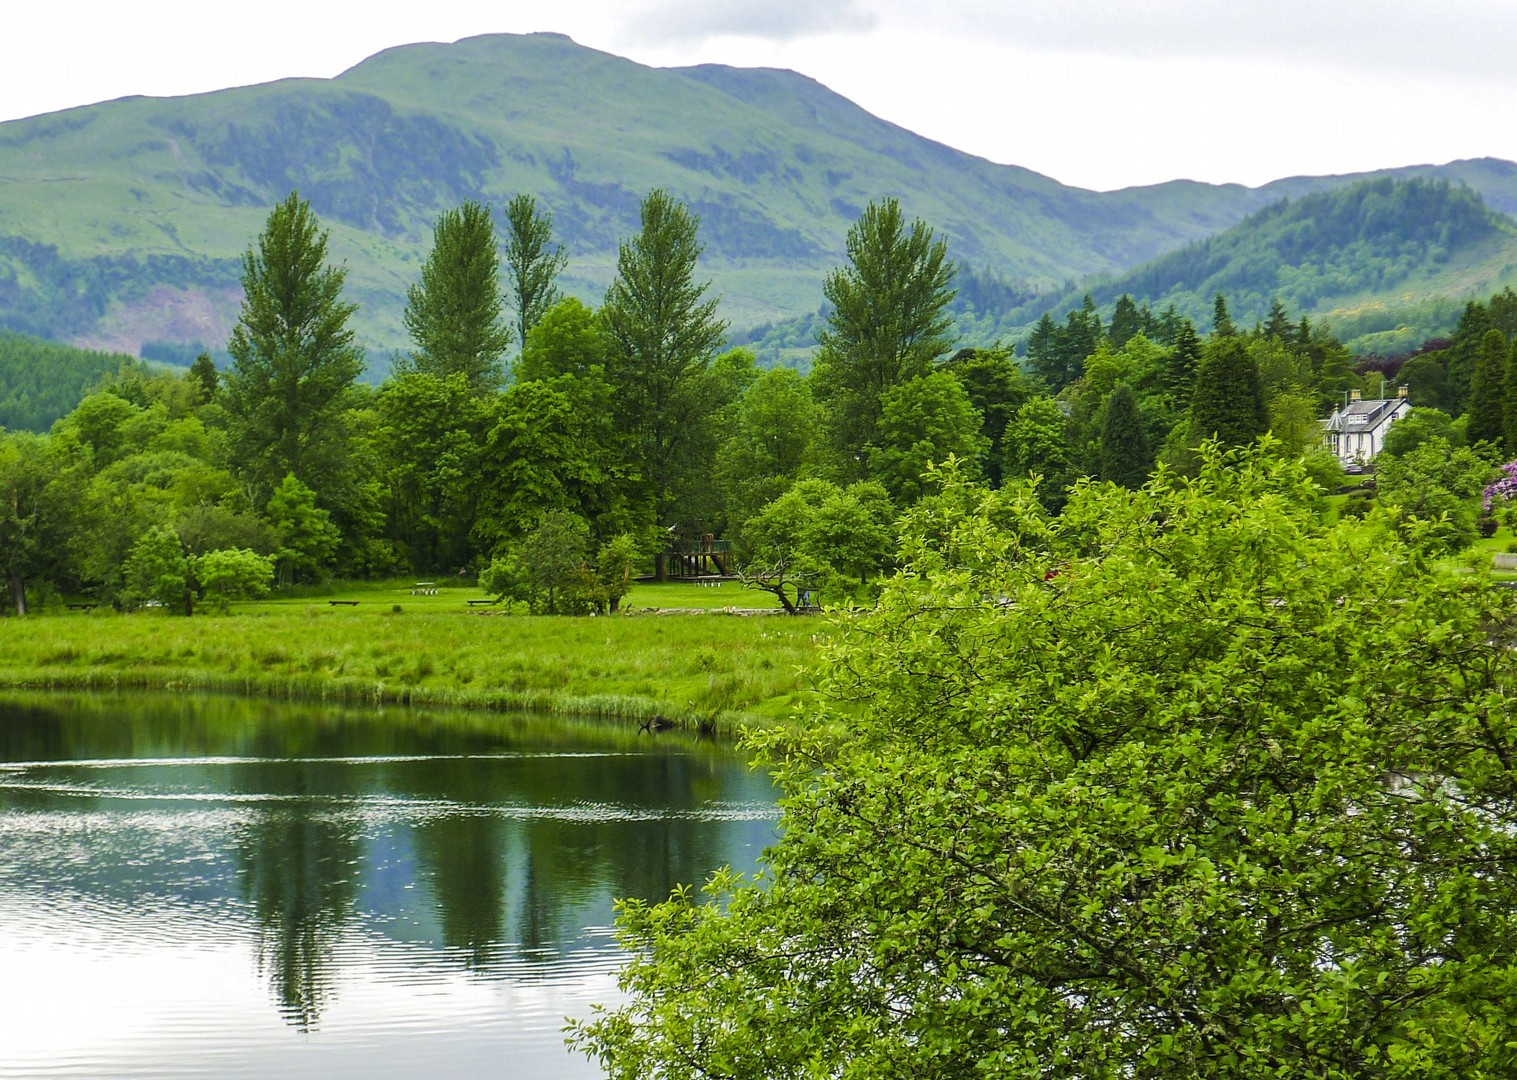 scottish-cycling-mountains-lakes-rivers-whiskey-distillery-bike-holiday.jpg - NEW! UK - Scotland - Lochs and Glens - Guided Leisure Cycling Holiday - Leisure Cycling